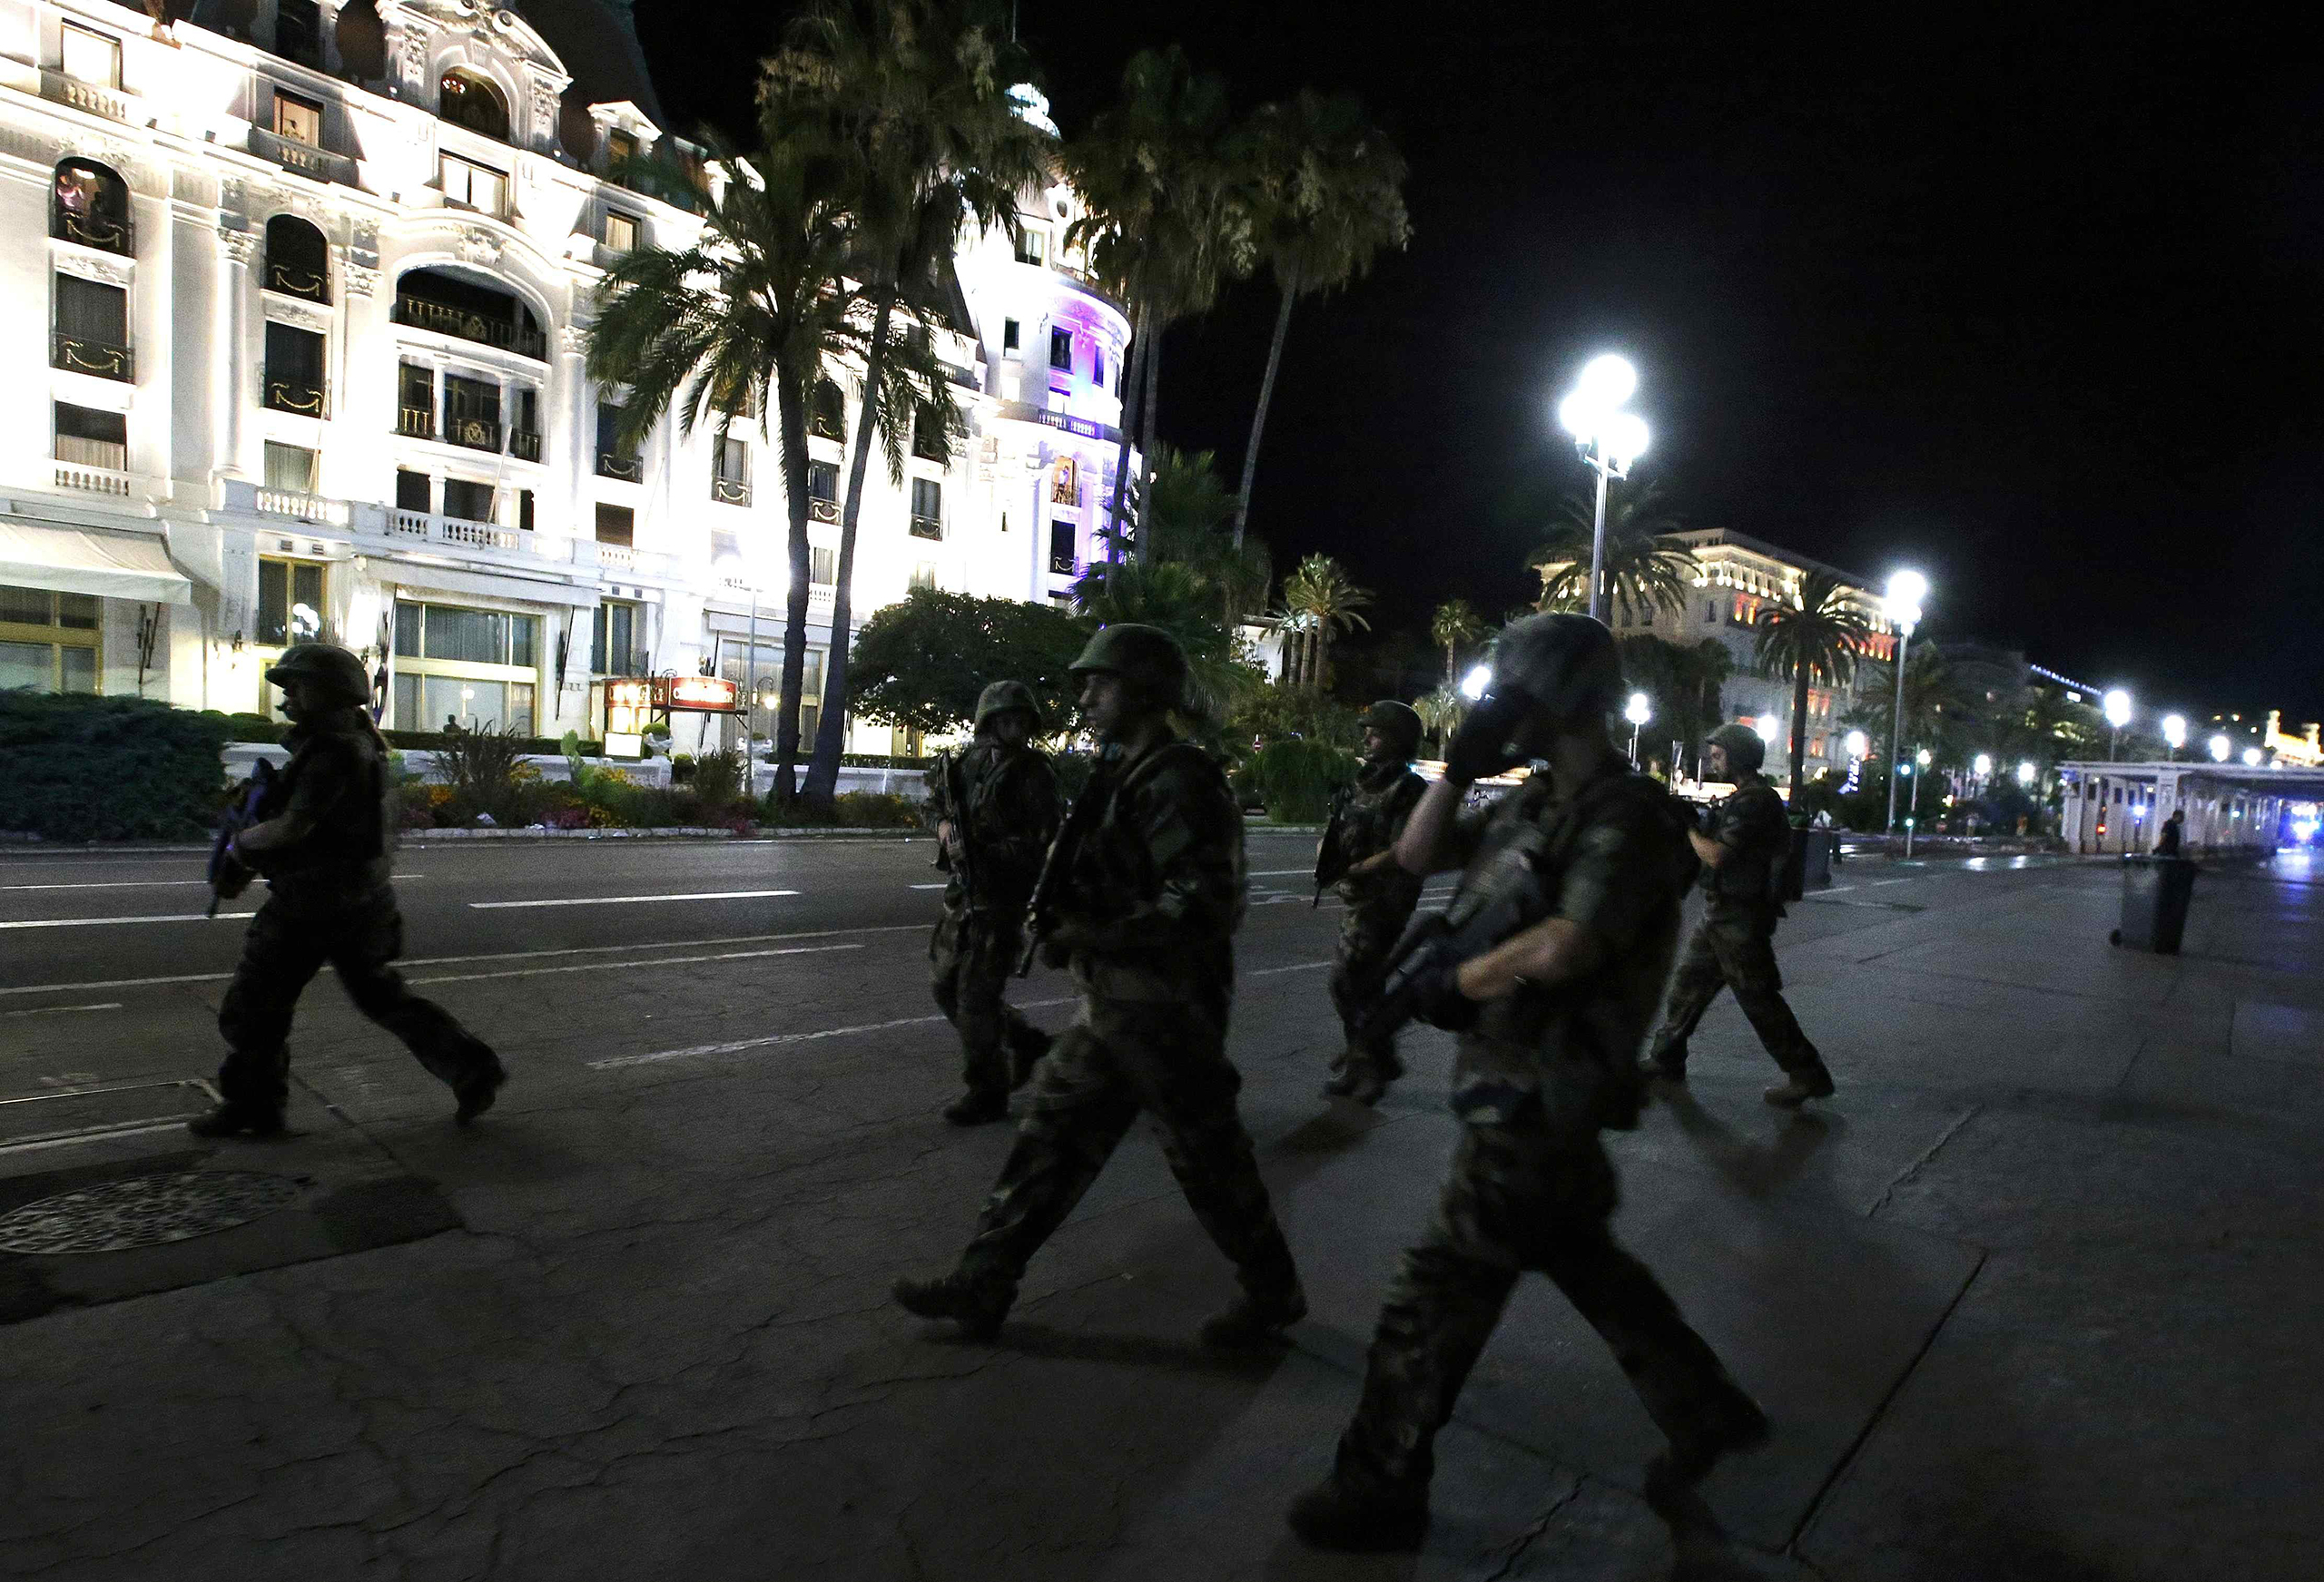 French soldiers advance on the street after at least 70 people were killed in Nice, France, when a truck ran into a crowd celebrating the Bastille Day national holiday on July 14, 2016.